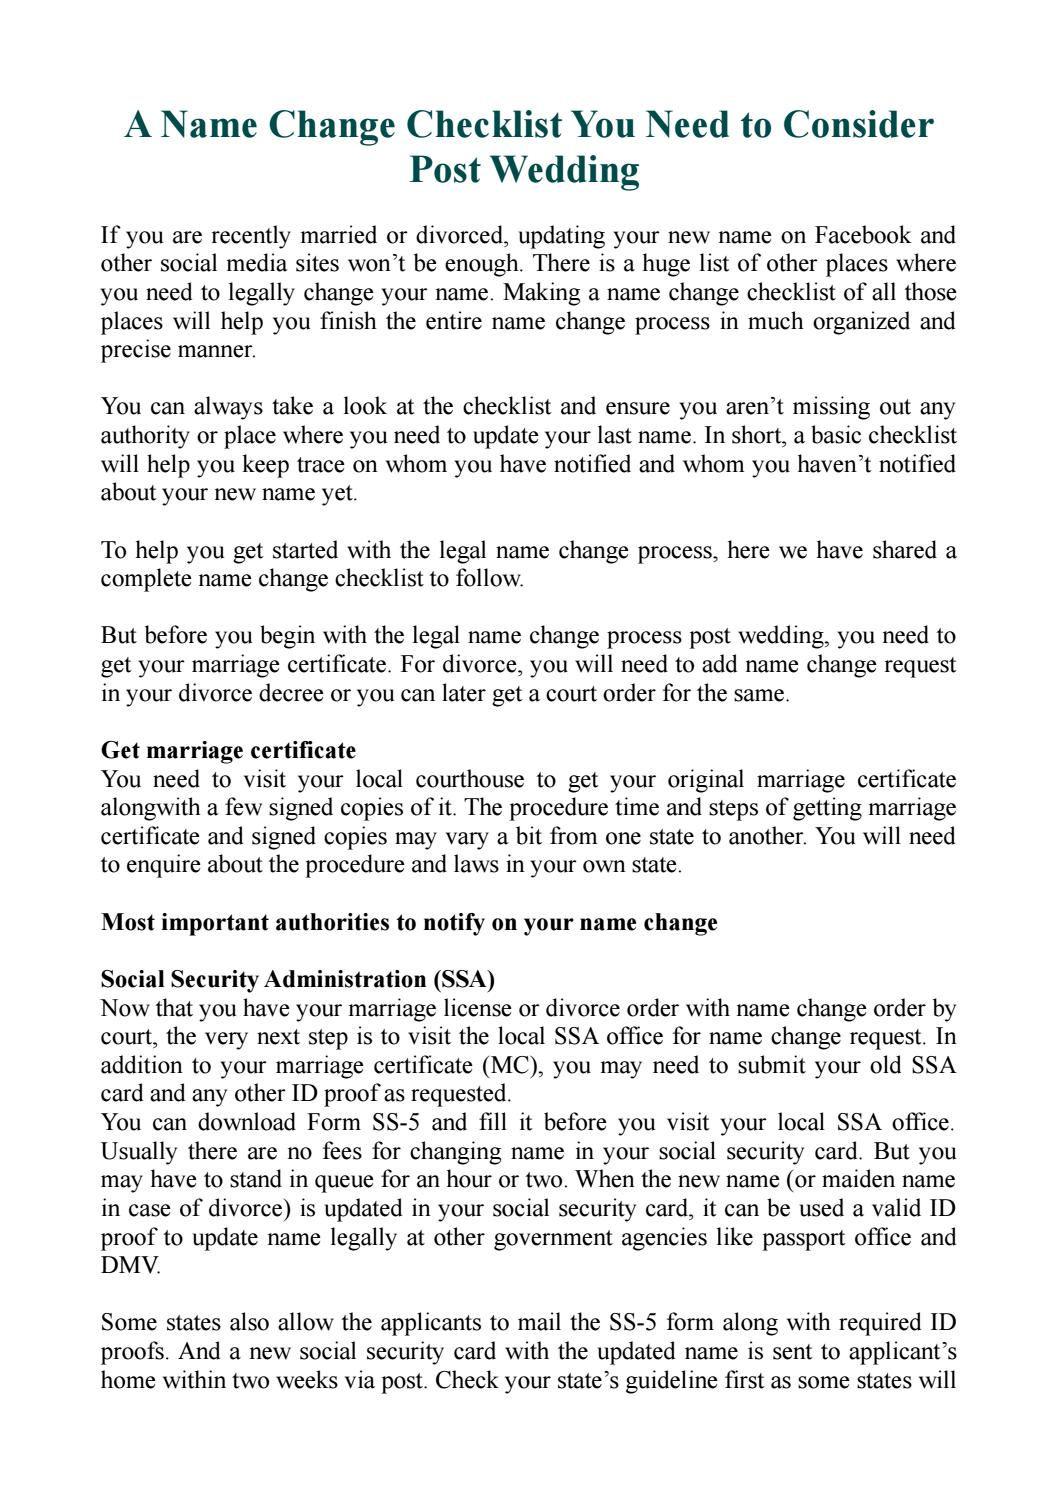 A Name Change Checklist You Need To Consider Post Wedding By HitchSwitch    Issuu